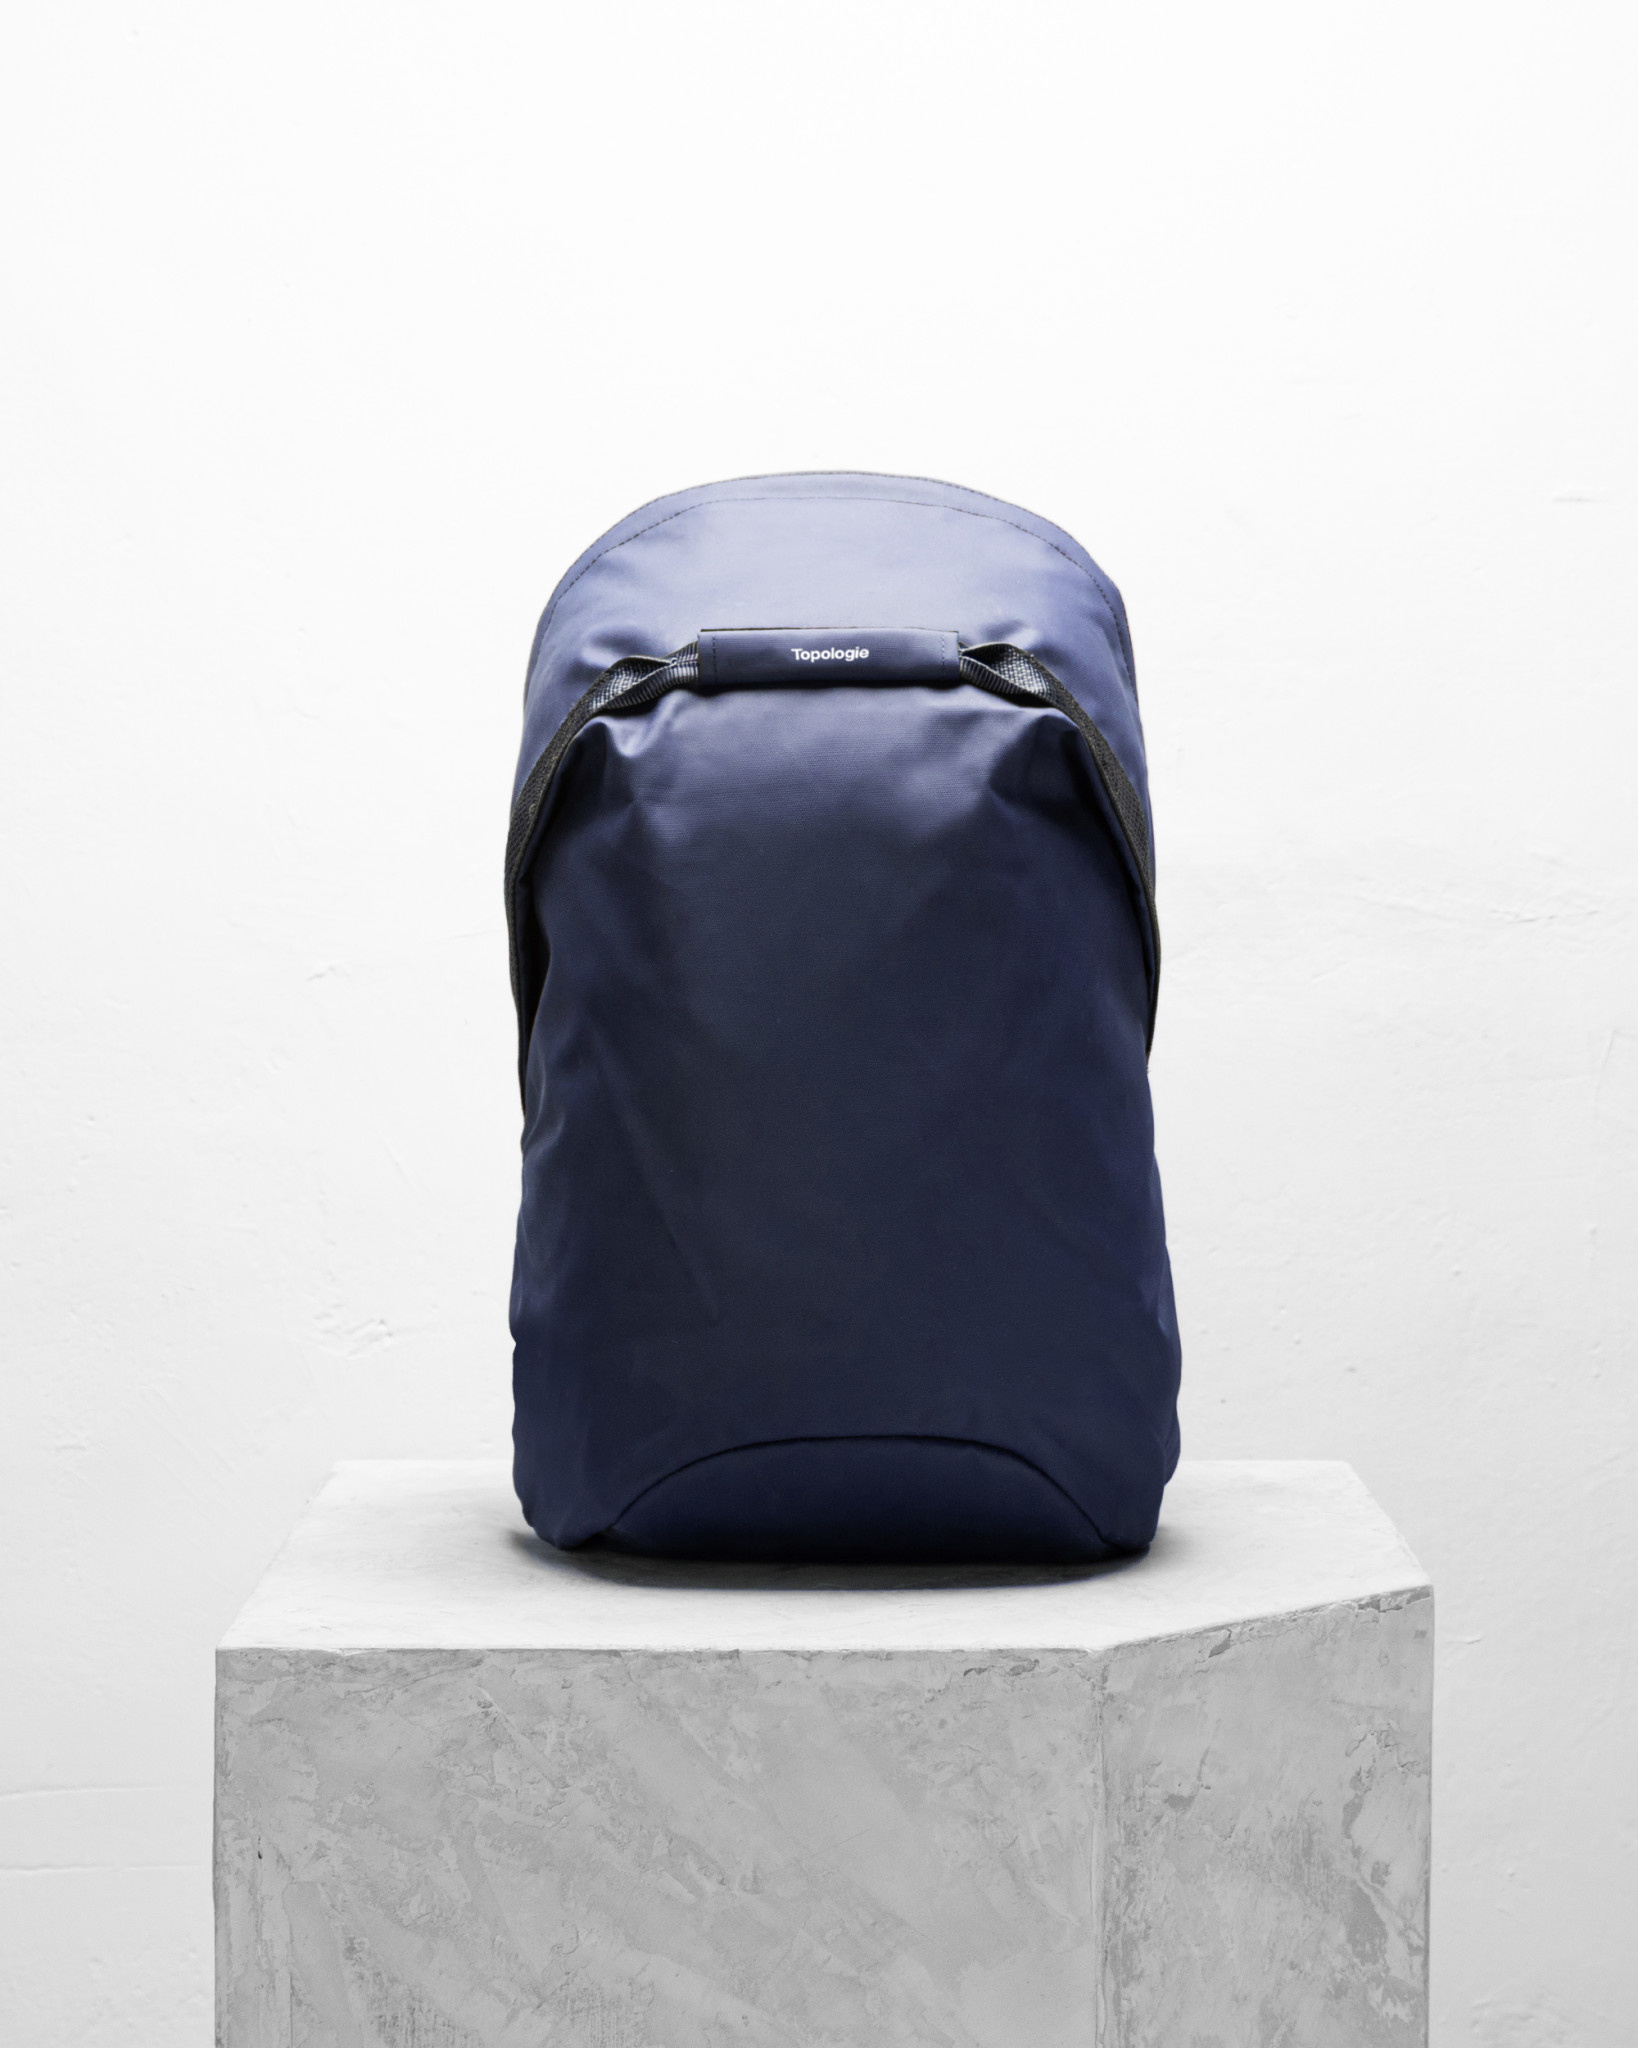 Topologie Topologie Multipitch Backpack (Large) - Midnight